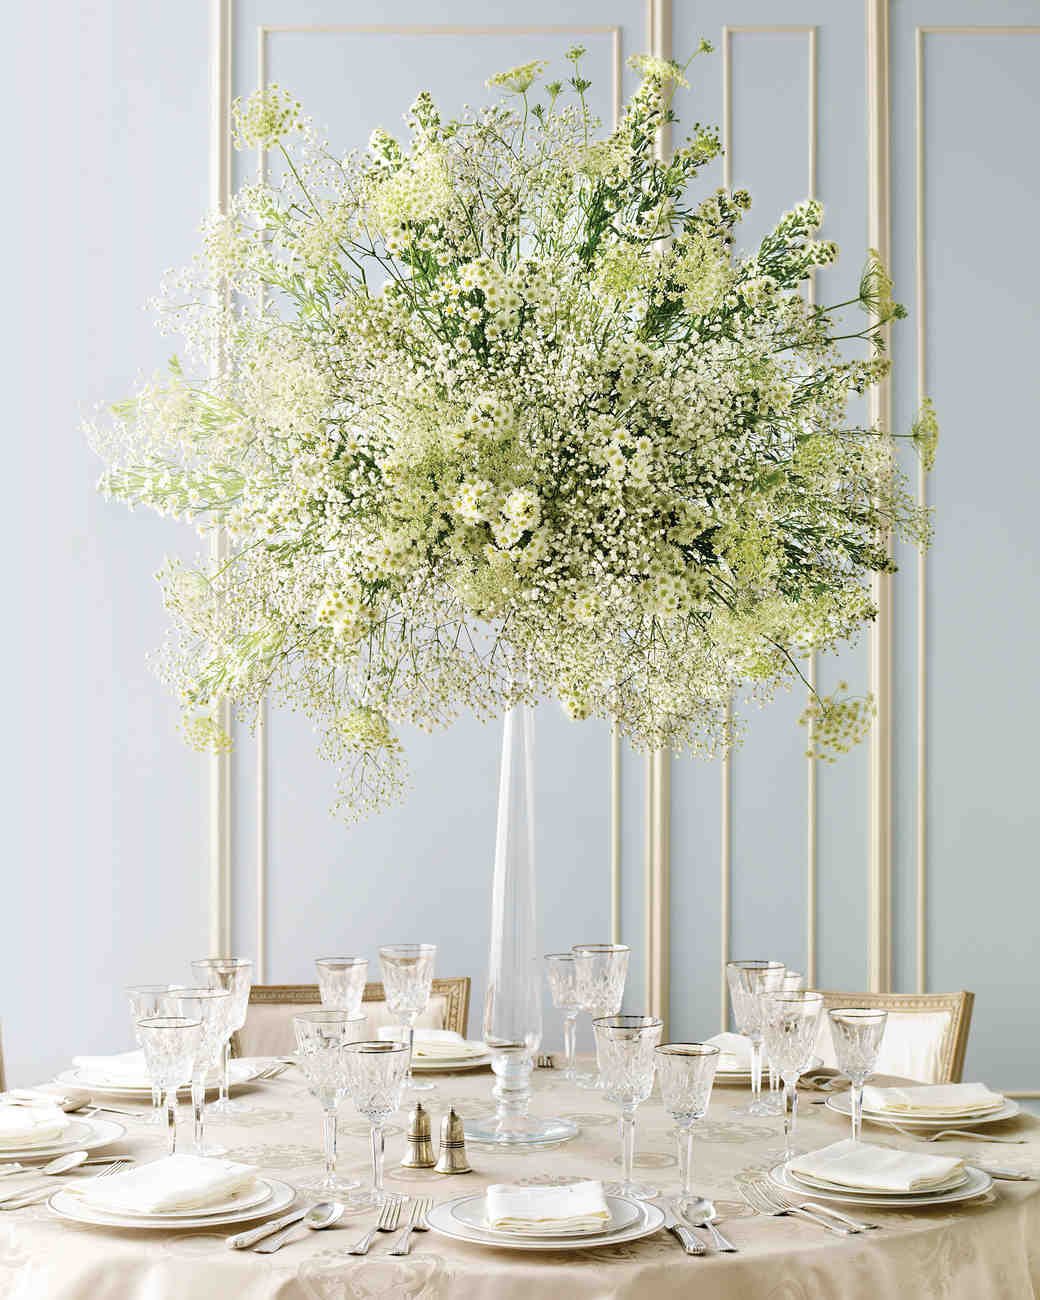 Elegant and inexpensive wedding flower ideas martha for Inexpensive wedding centrepieces